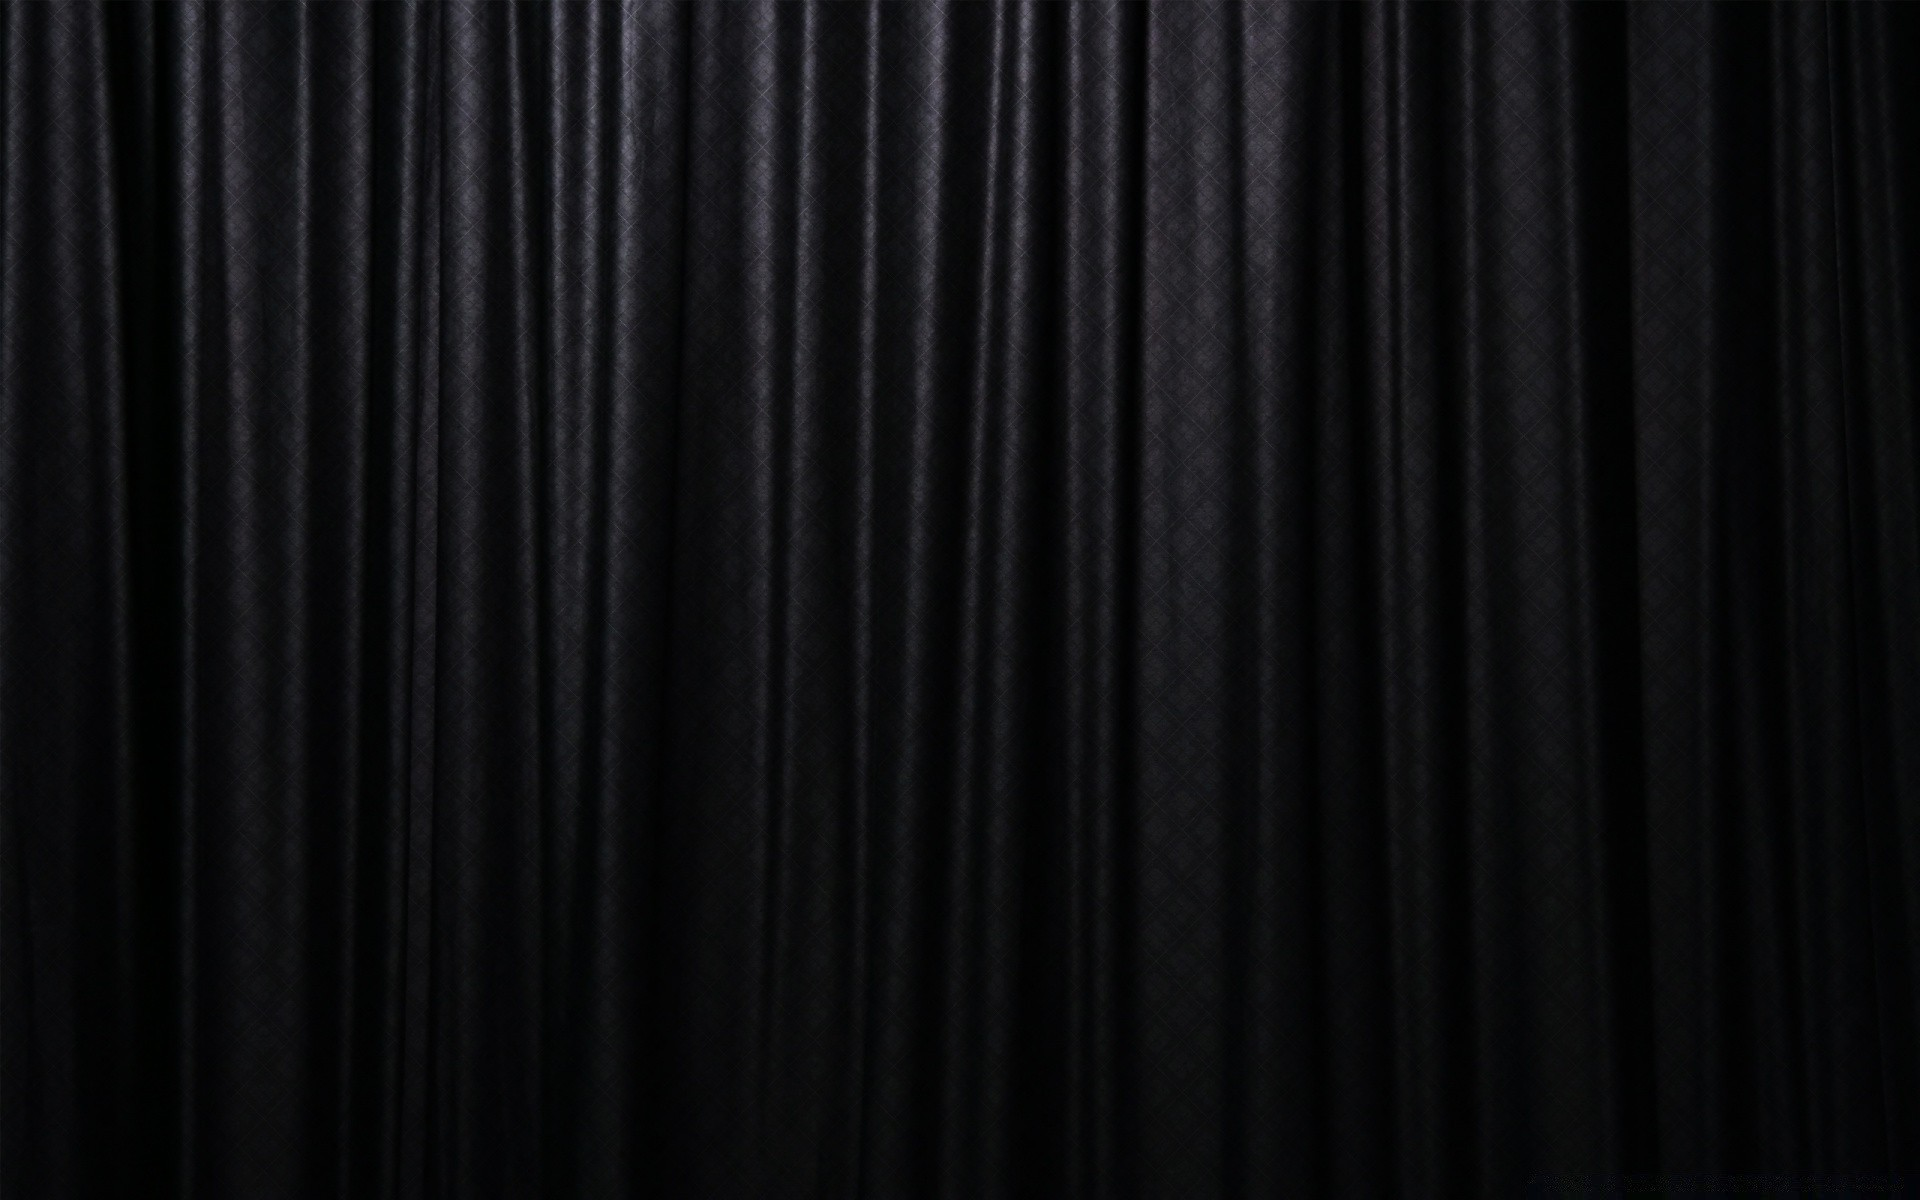 window curtain black android wallpapers for free